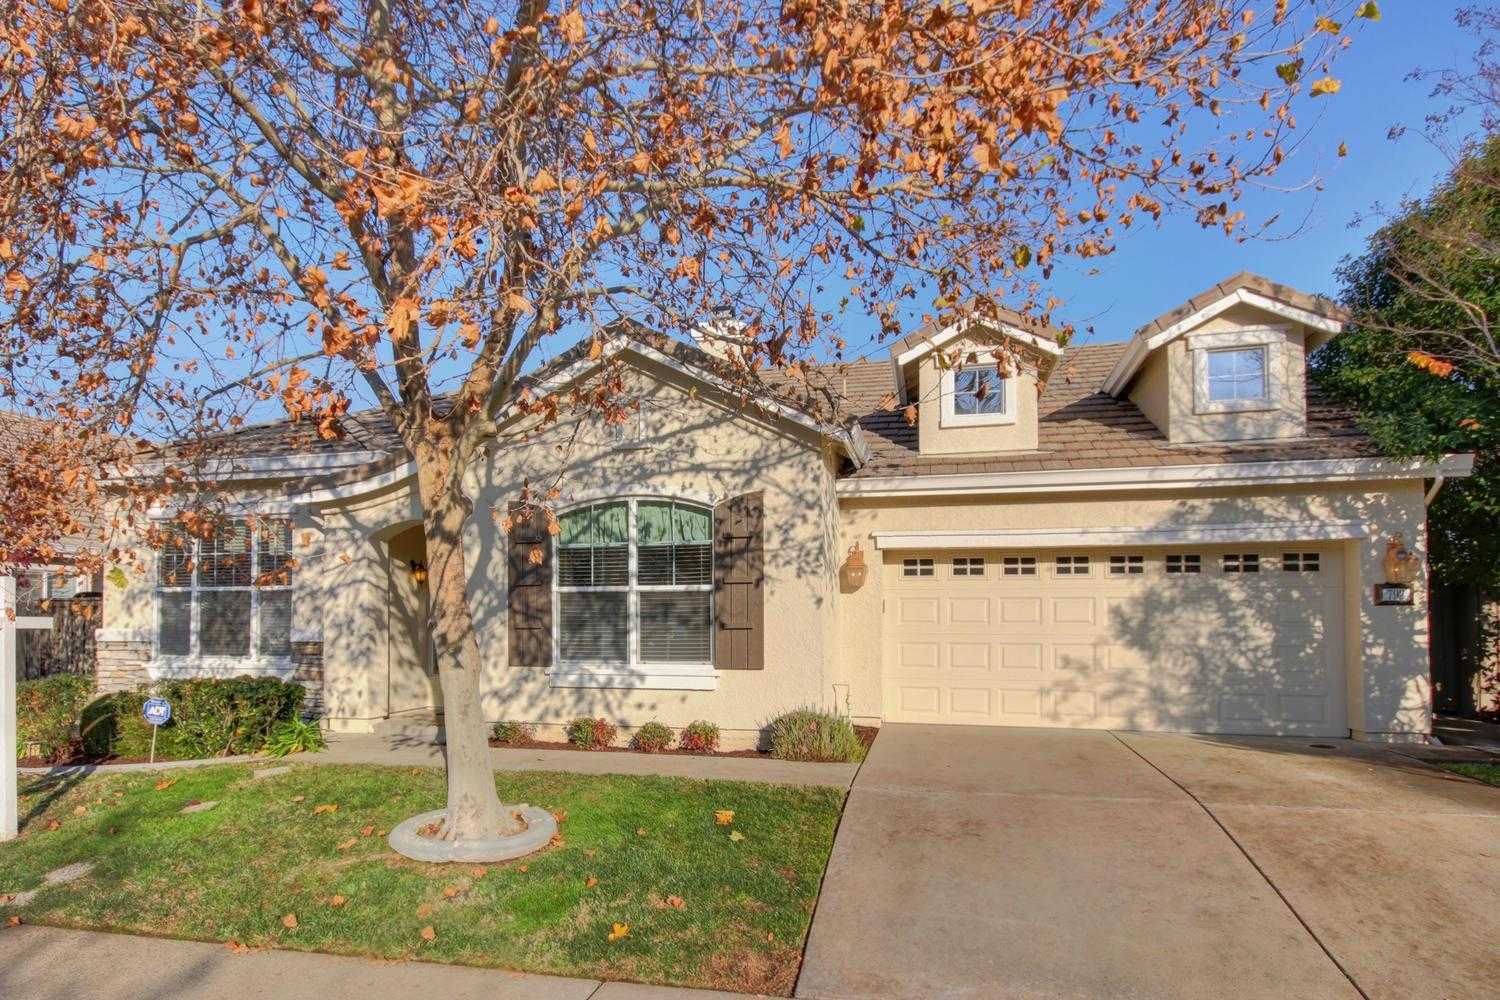 $540,000 - 3Br/2Ba -  for Sale in Folsom